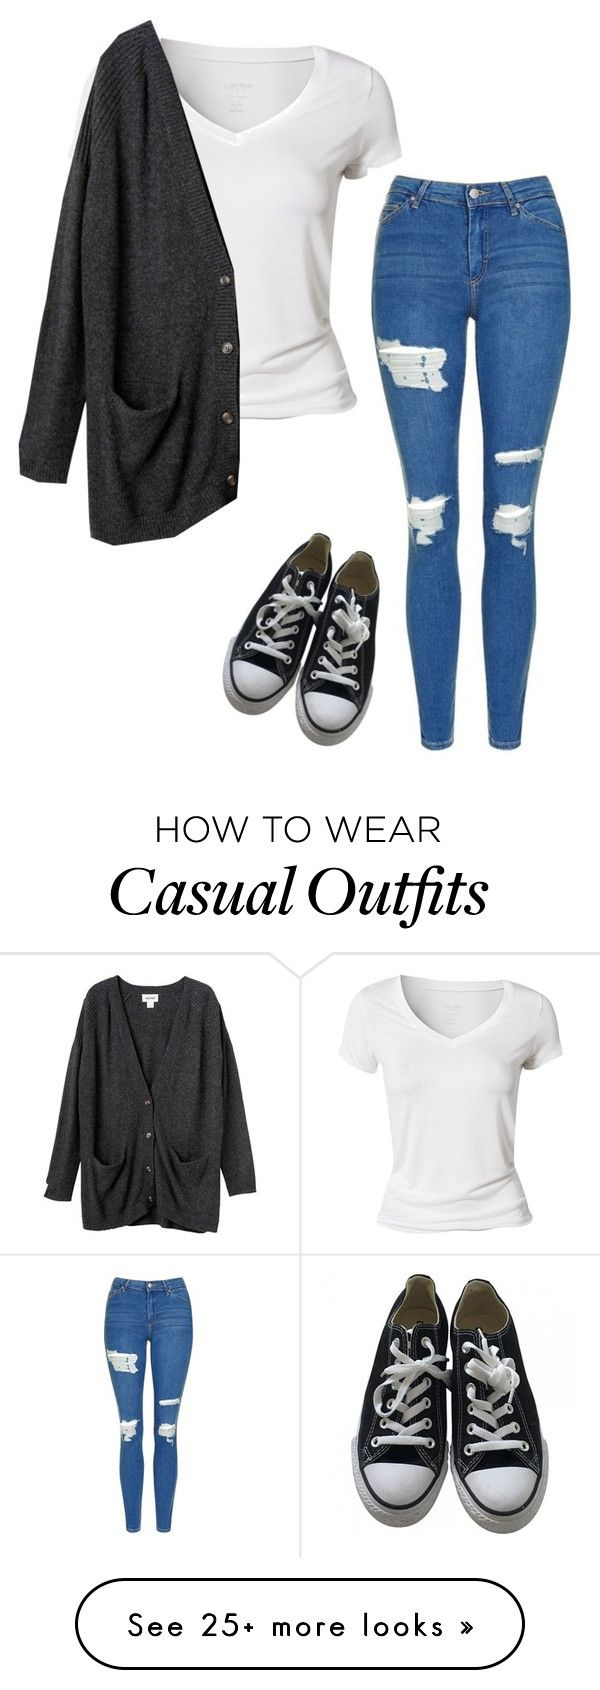 ce0df6e3b9a7d8f04daebb5fd792fb2e - Casual spring work outfits with sneakers 15 best outfits